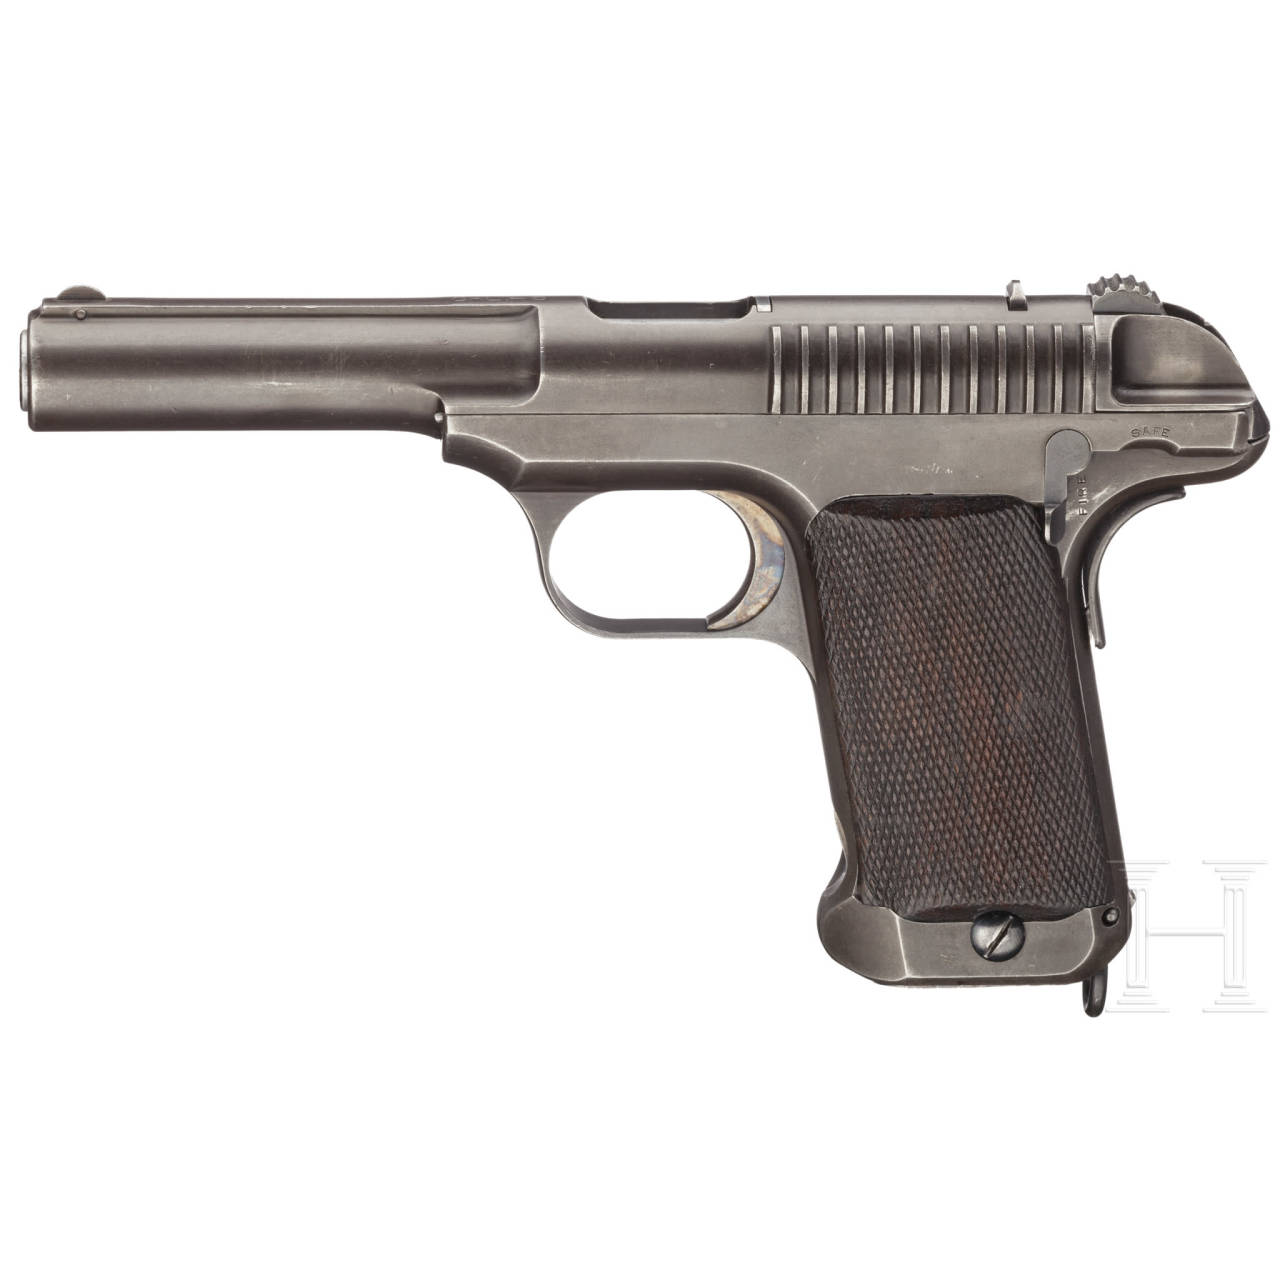 A Savage Mod. 1907 Military Contract trial pistol